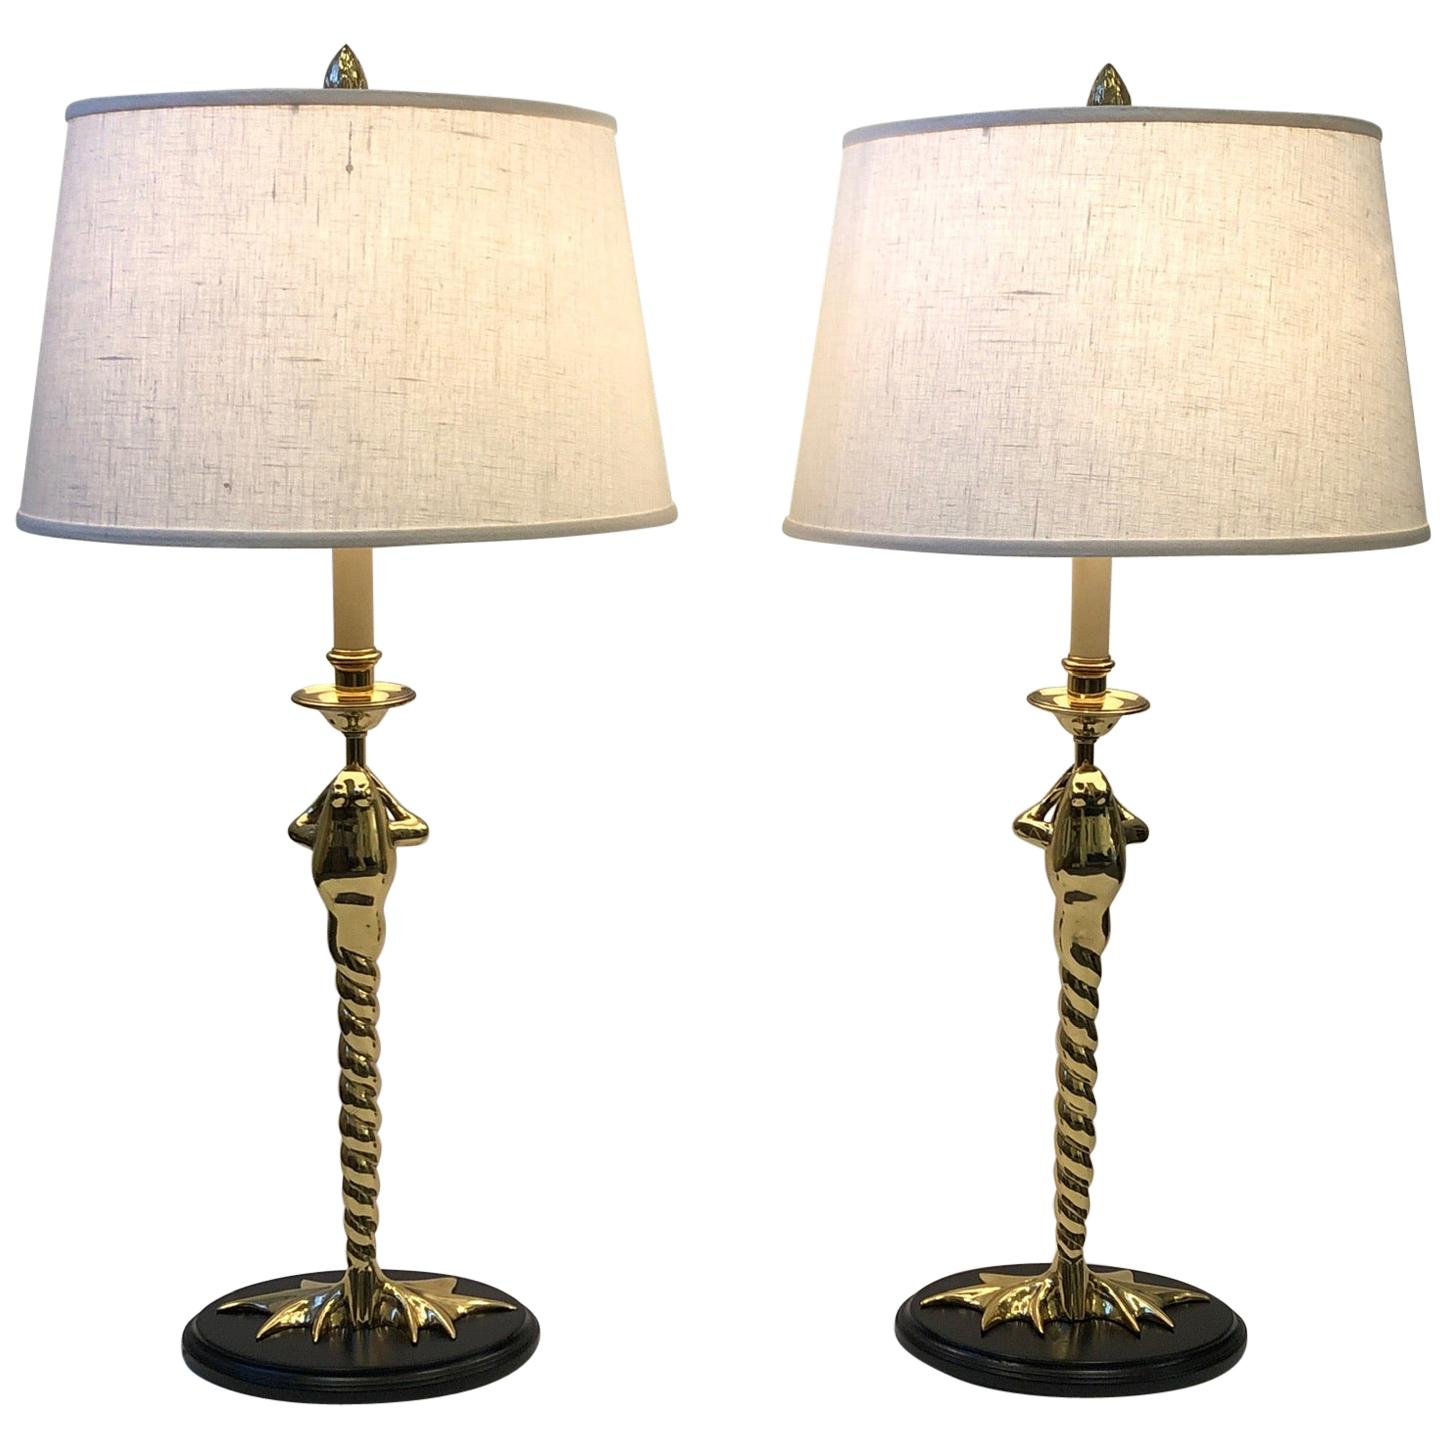 Pair of Brass Frog Table Lamps by Chapman Lighting